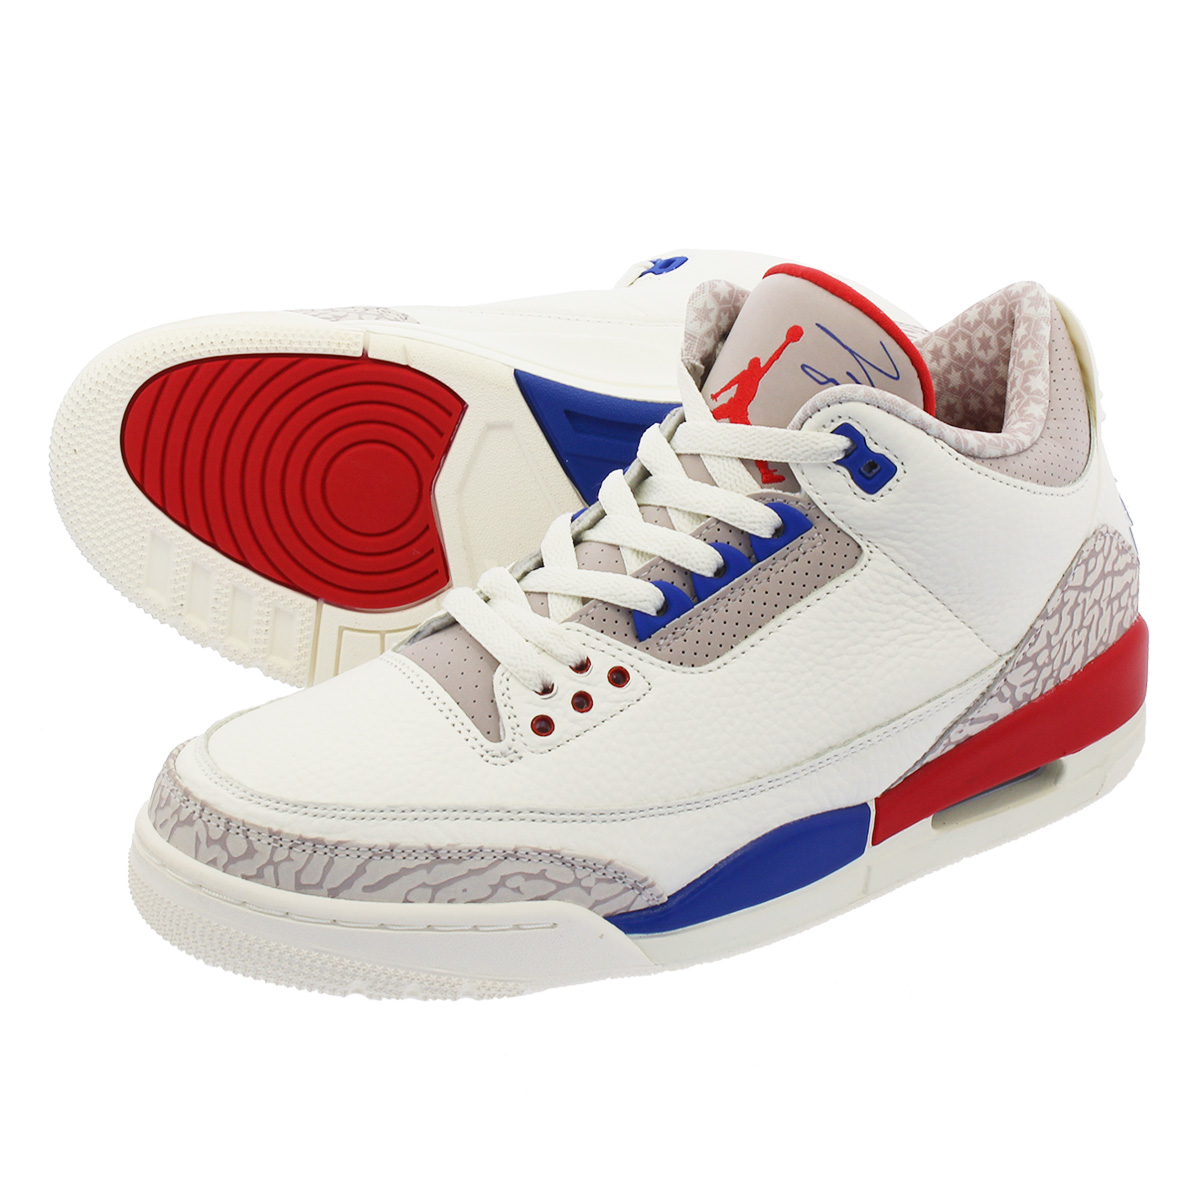 f66678280f1 LOWTEX PLUS: NIKE AIR JORDAN 3 RETRO Nike Air Jordan 3 nostalgic SAIL/SPORT  ROYAL/FIRE RED 136,064-140 | Rakuten Global Market